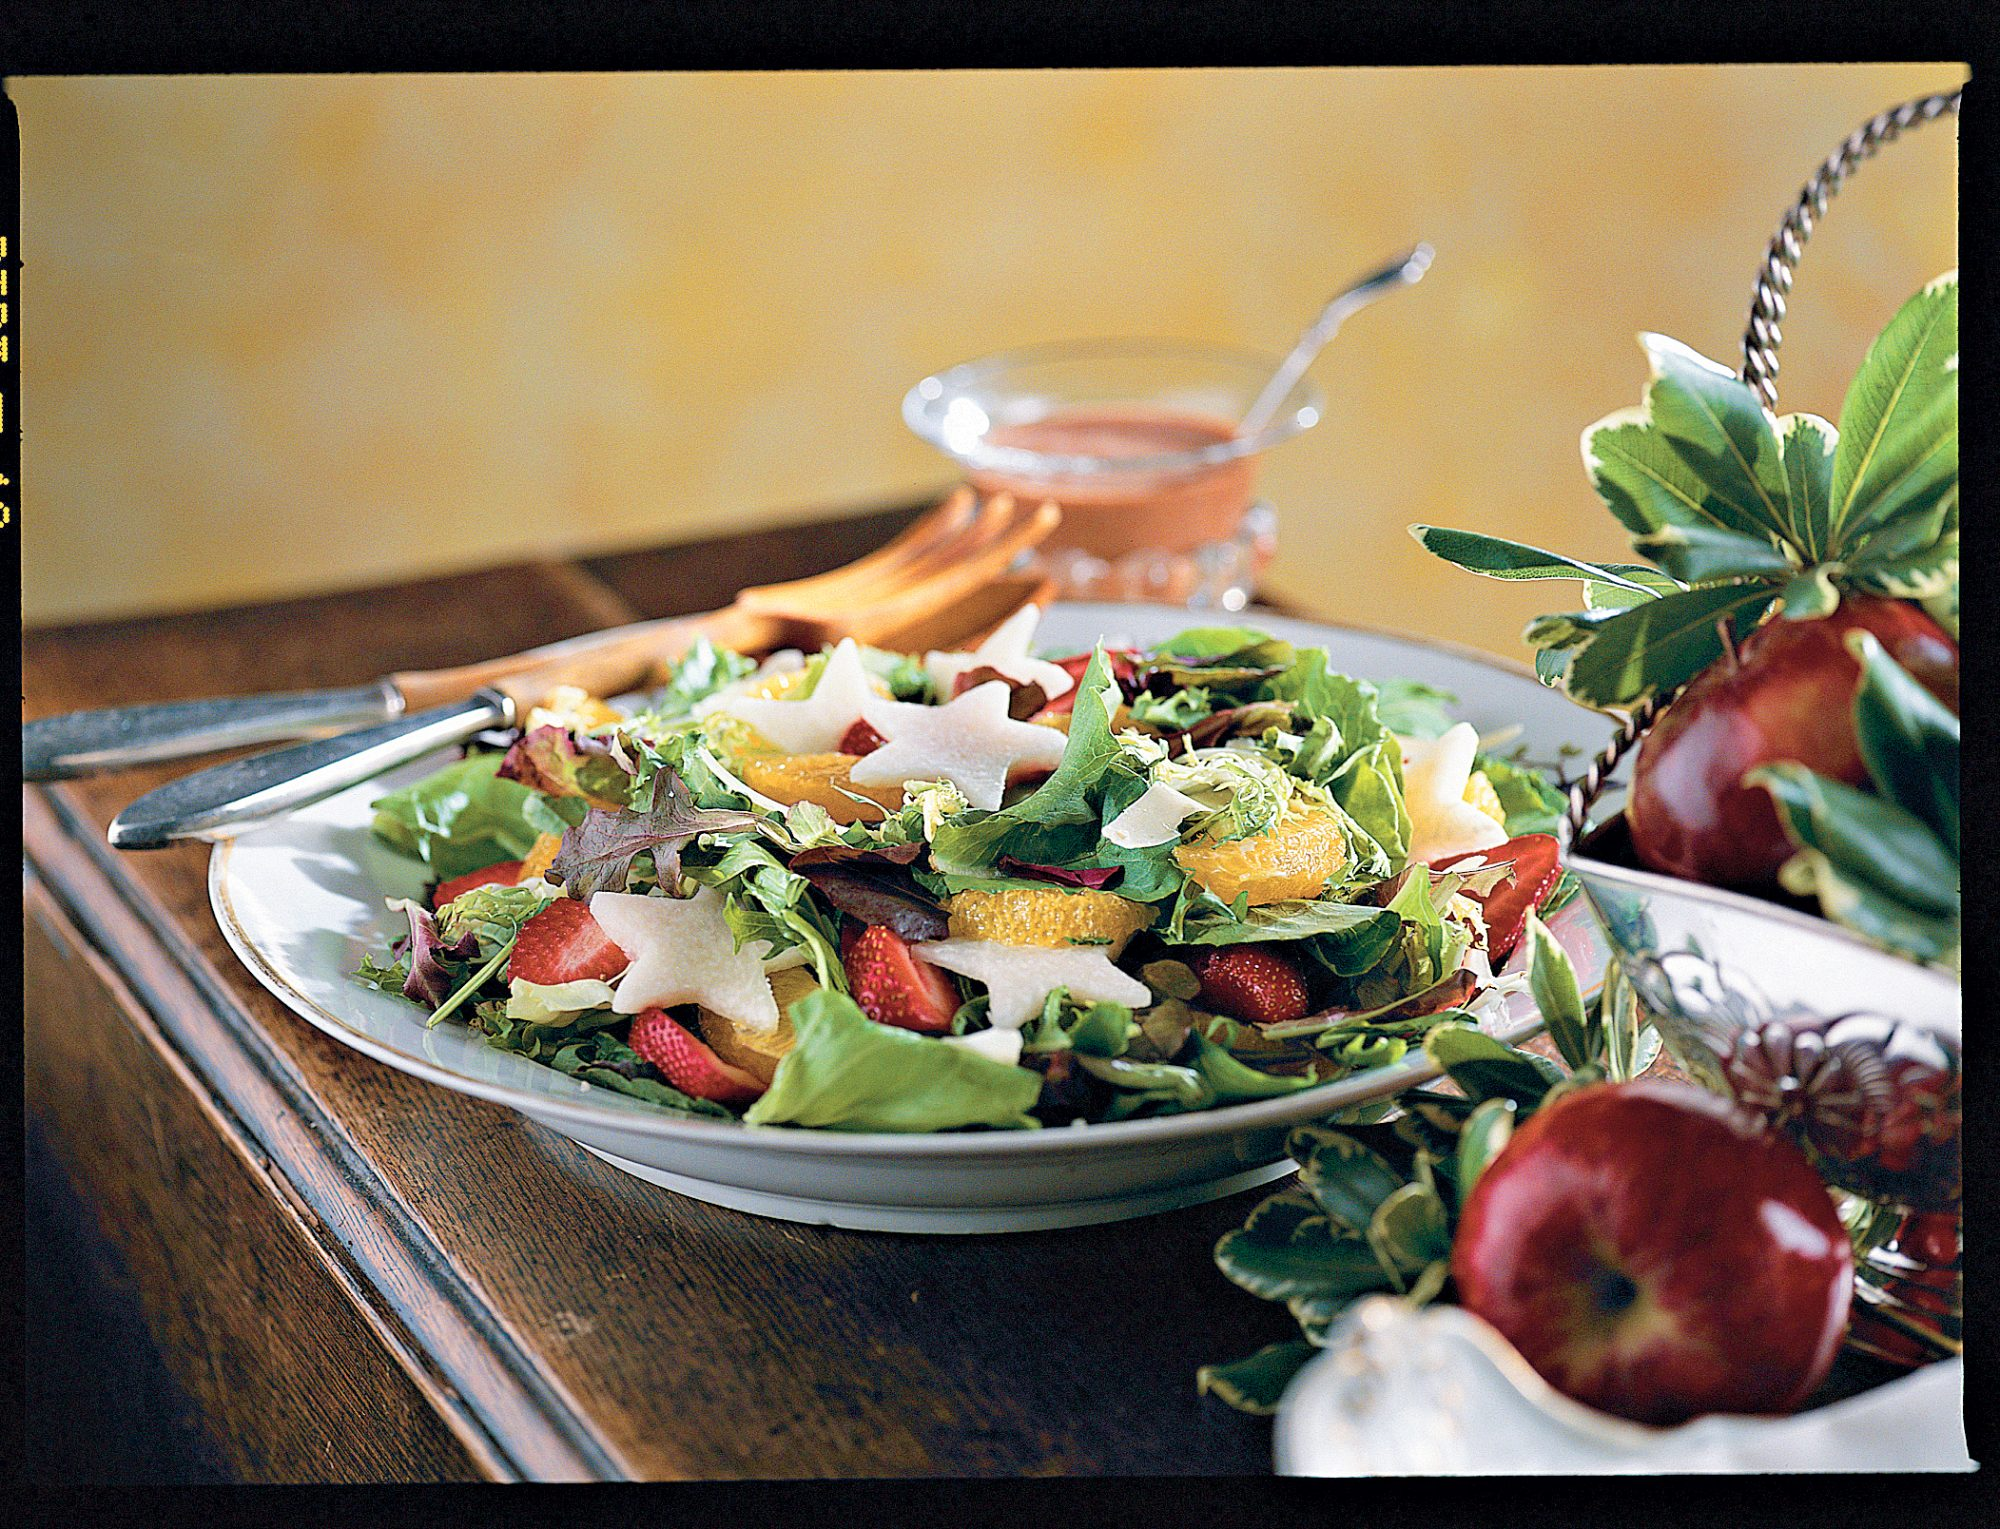 Chilled Vegetable Salad